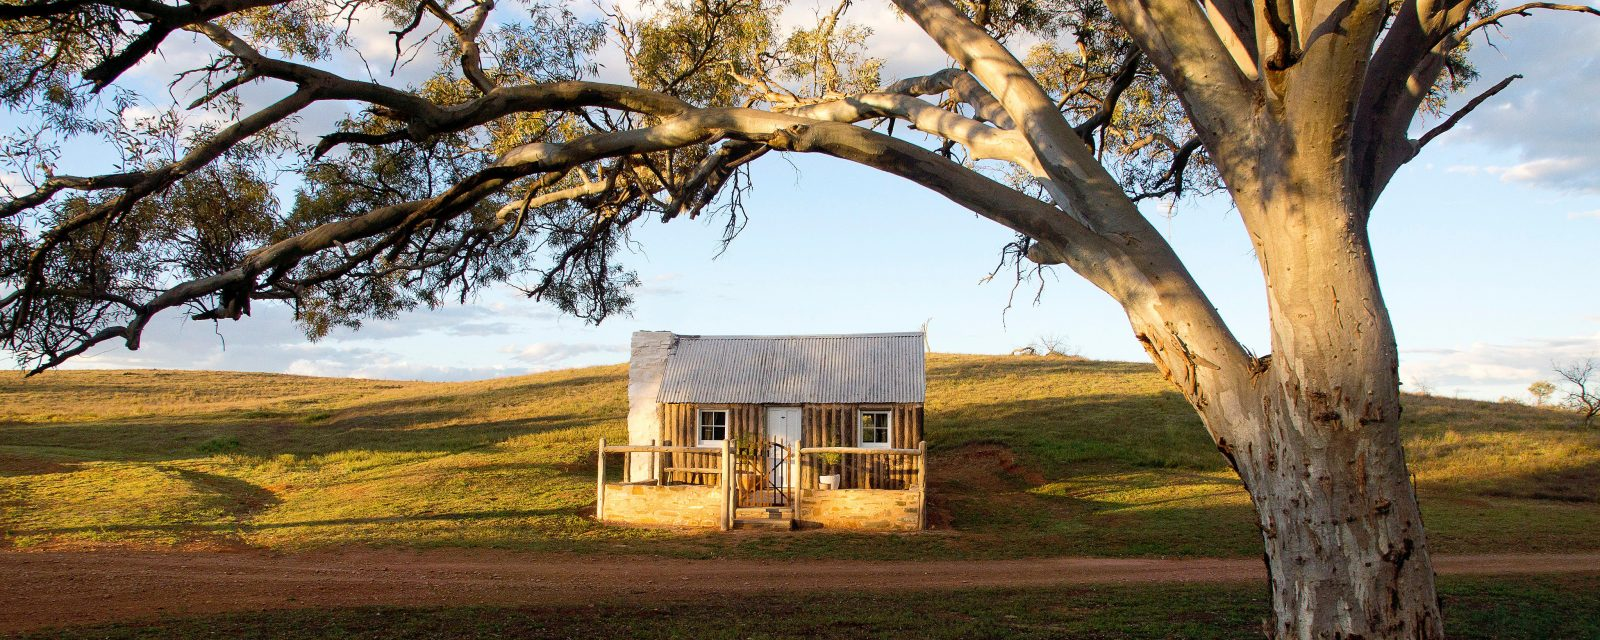 This pine and pug building has been lovingly restored to its former glory.